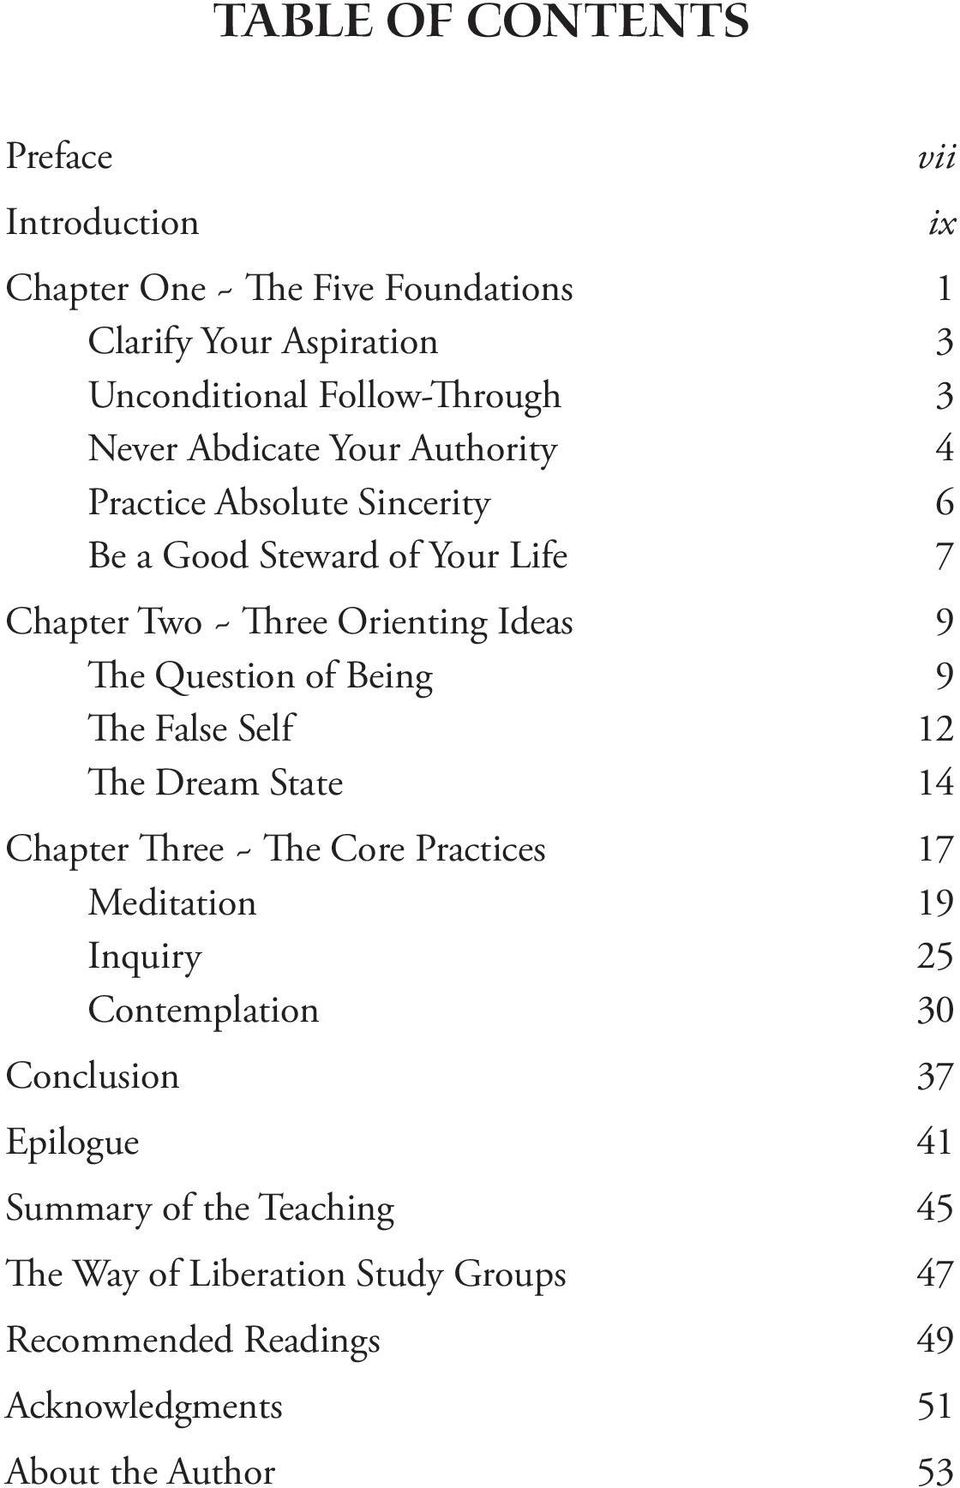 of Being 9 The False Self 12 The Dream State 14 Chapter Three ~ The Core Practices 17 Meditation 19 Inquiry 25 Contemplation 30 Conclusion